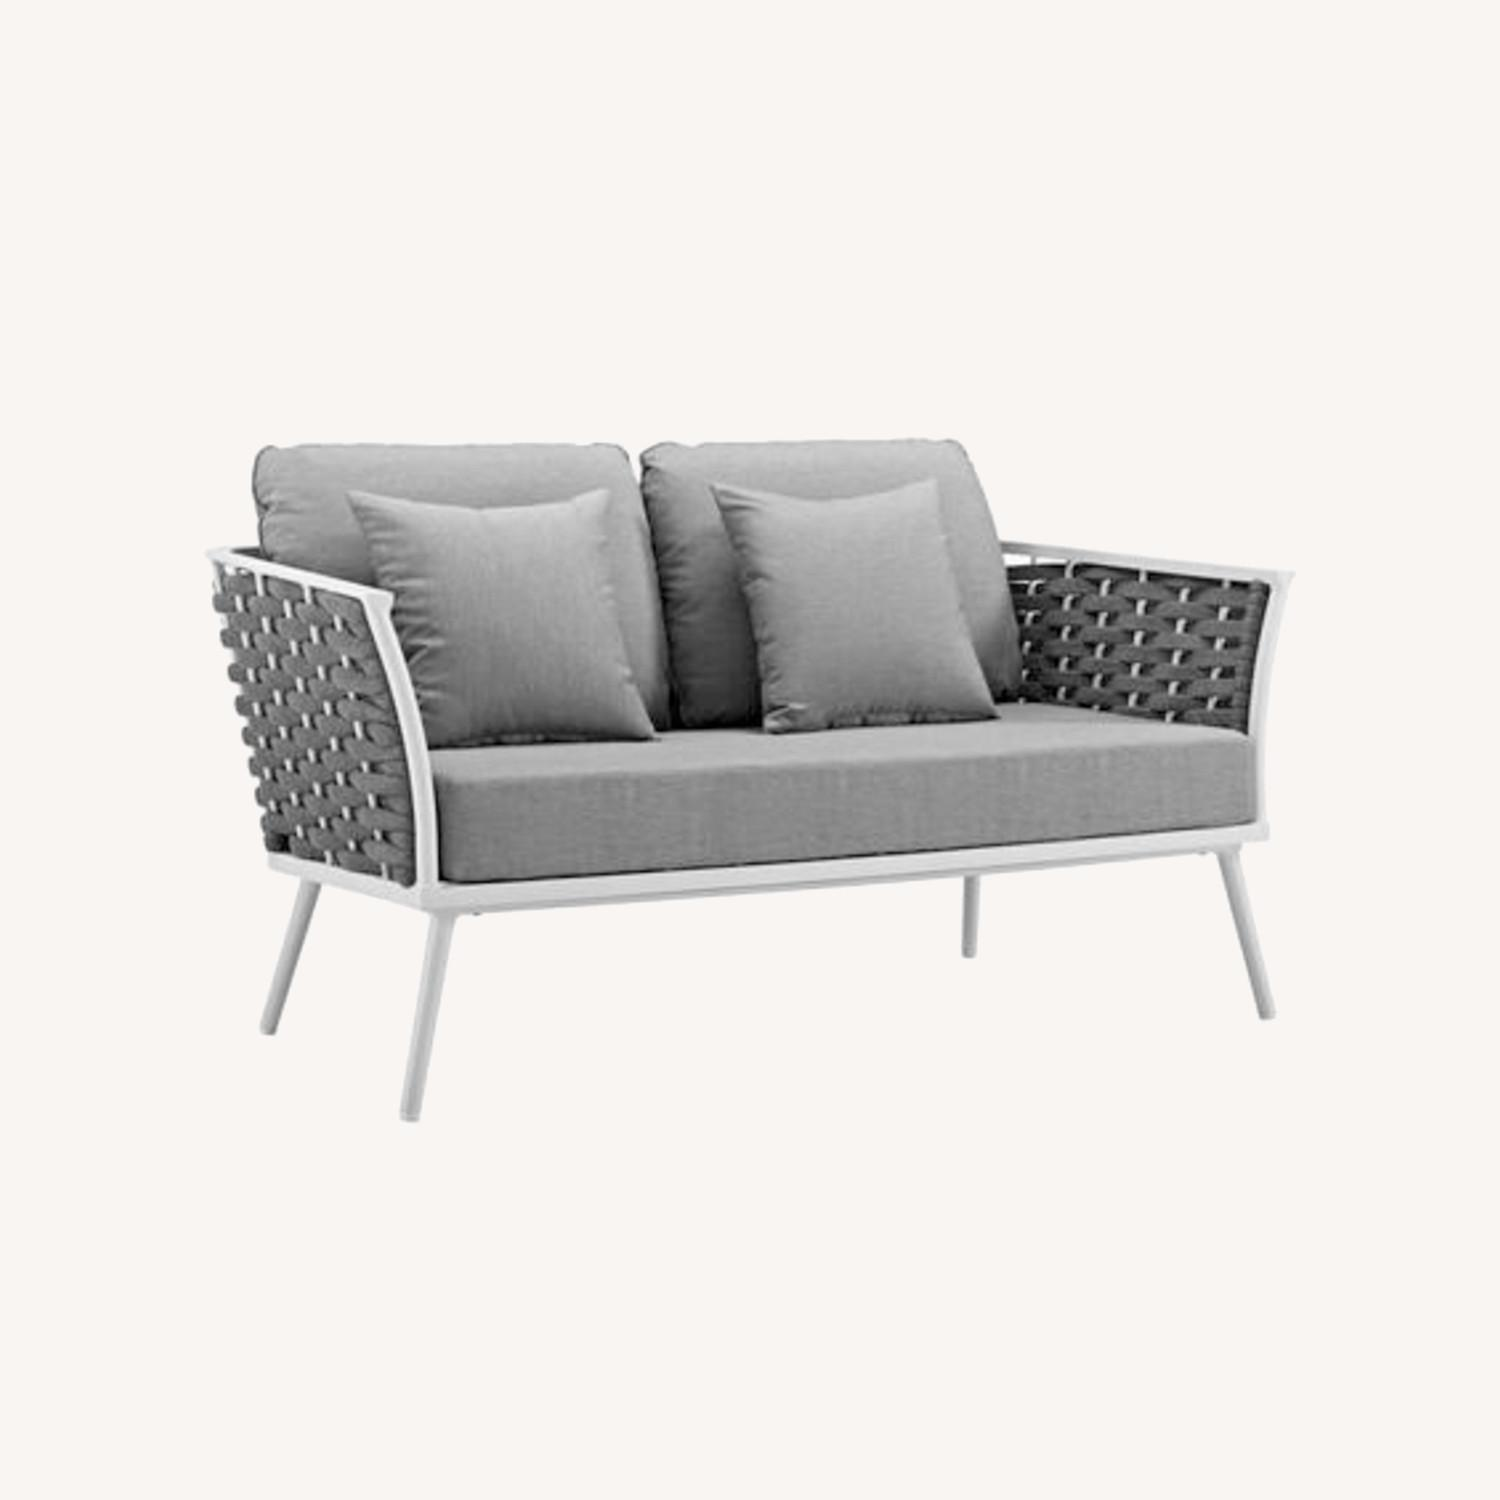 Outdoor Loveseat In Gray Fabric Rope & White Frame - image-6